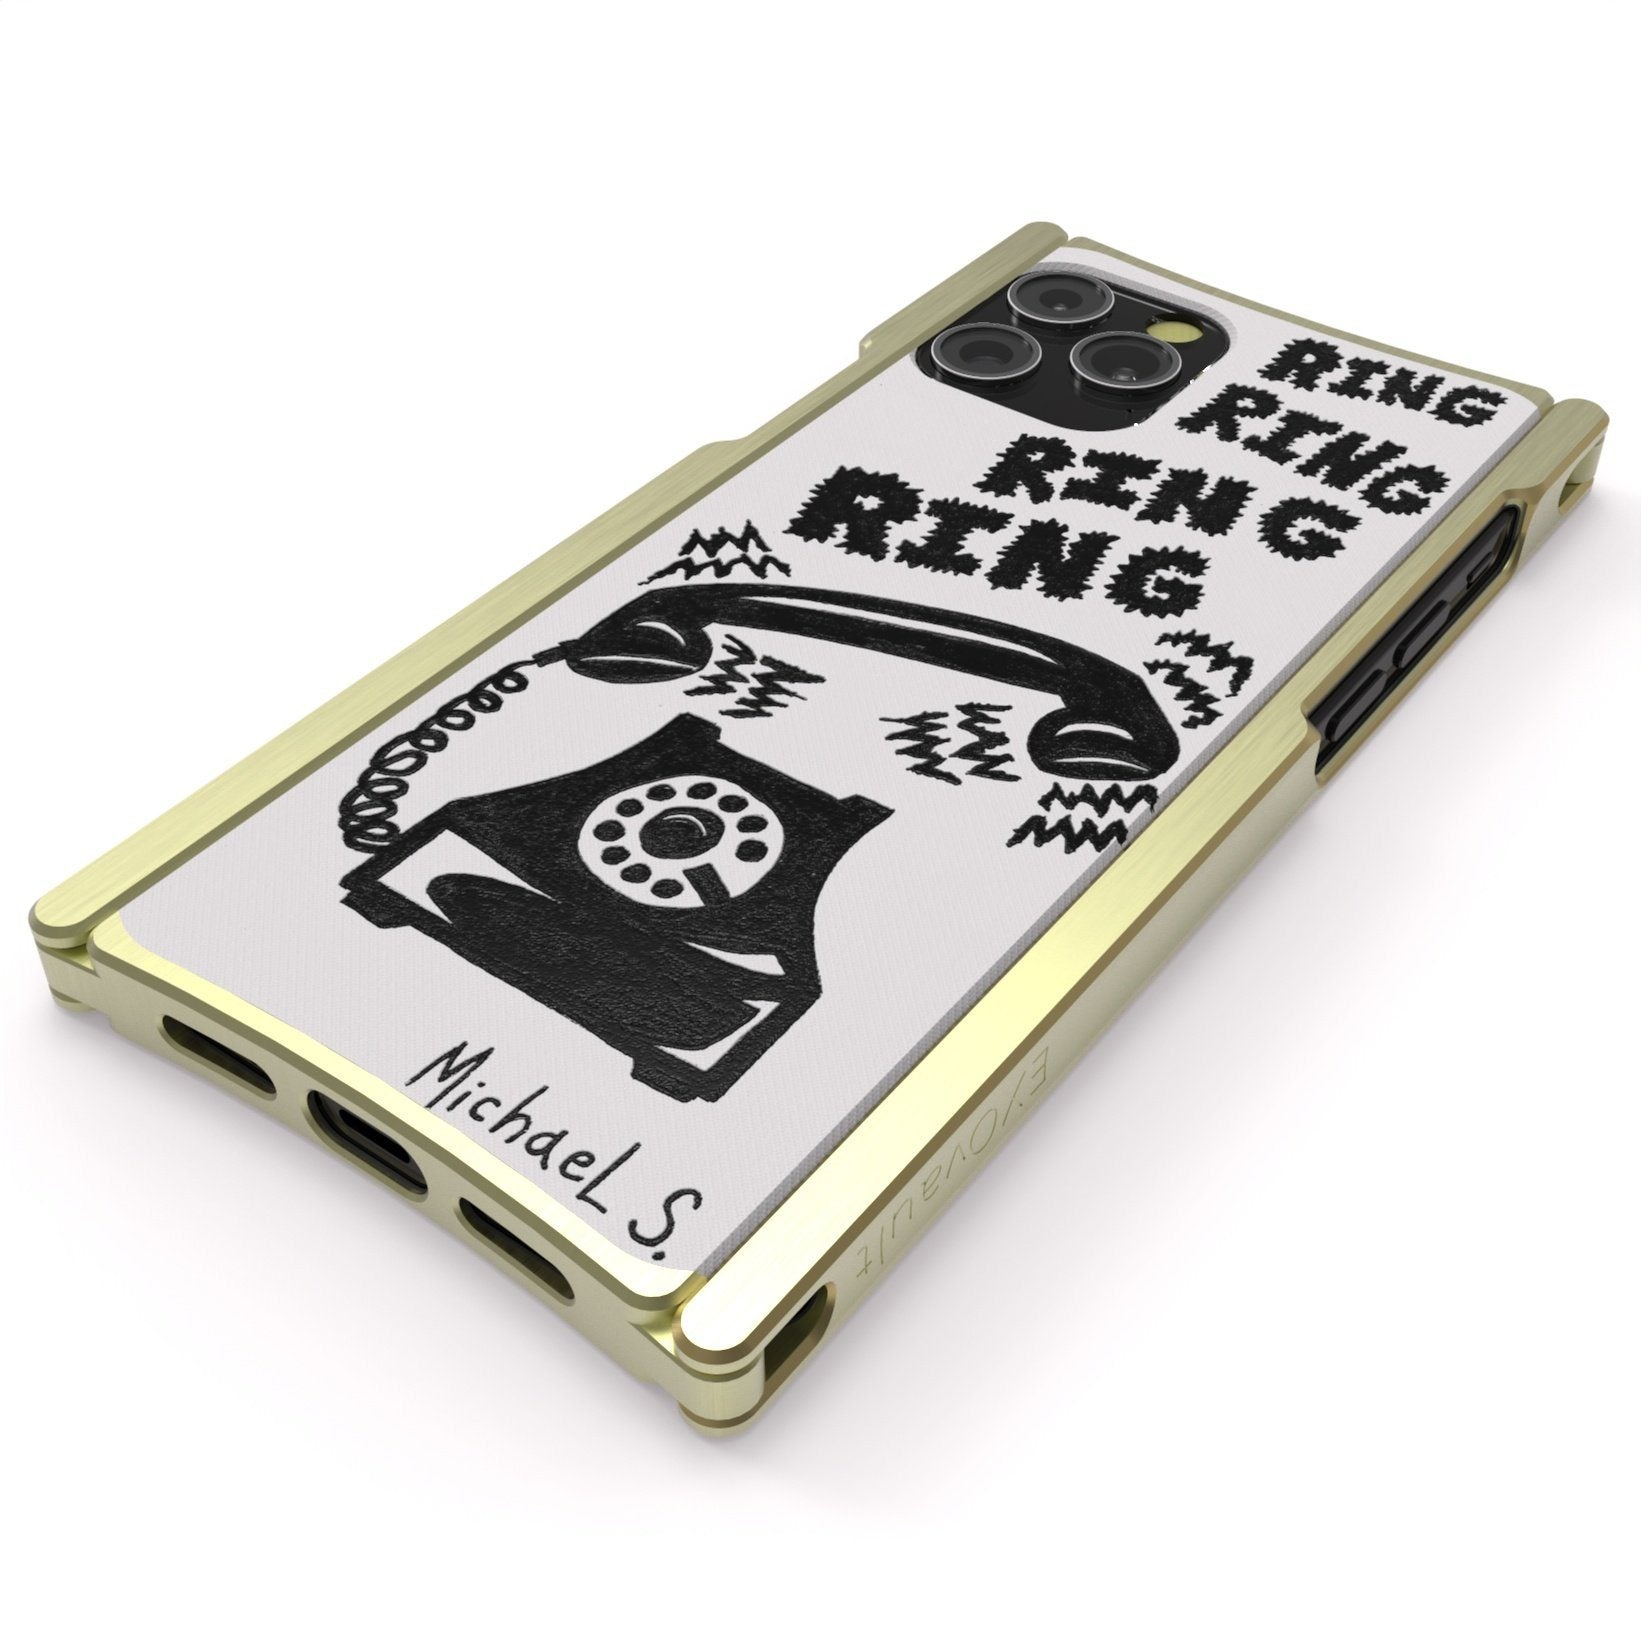 Michael Scoggins, Ring Ring Ring, Artist Edition Europa 12 Pro Max Brass and White G10 - Preorder